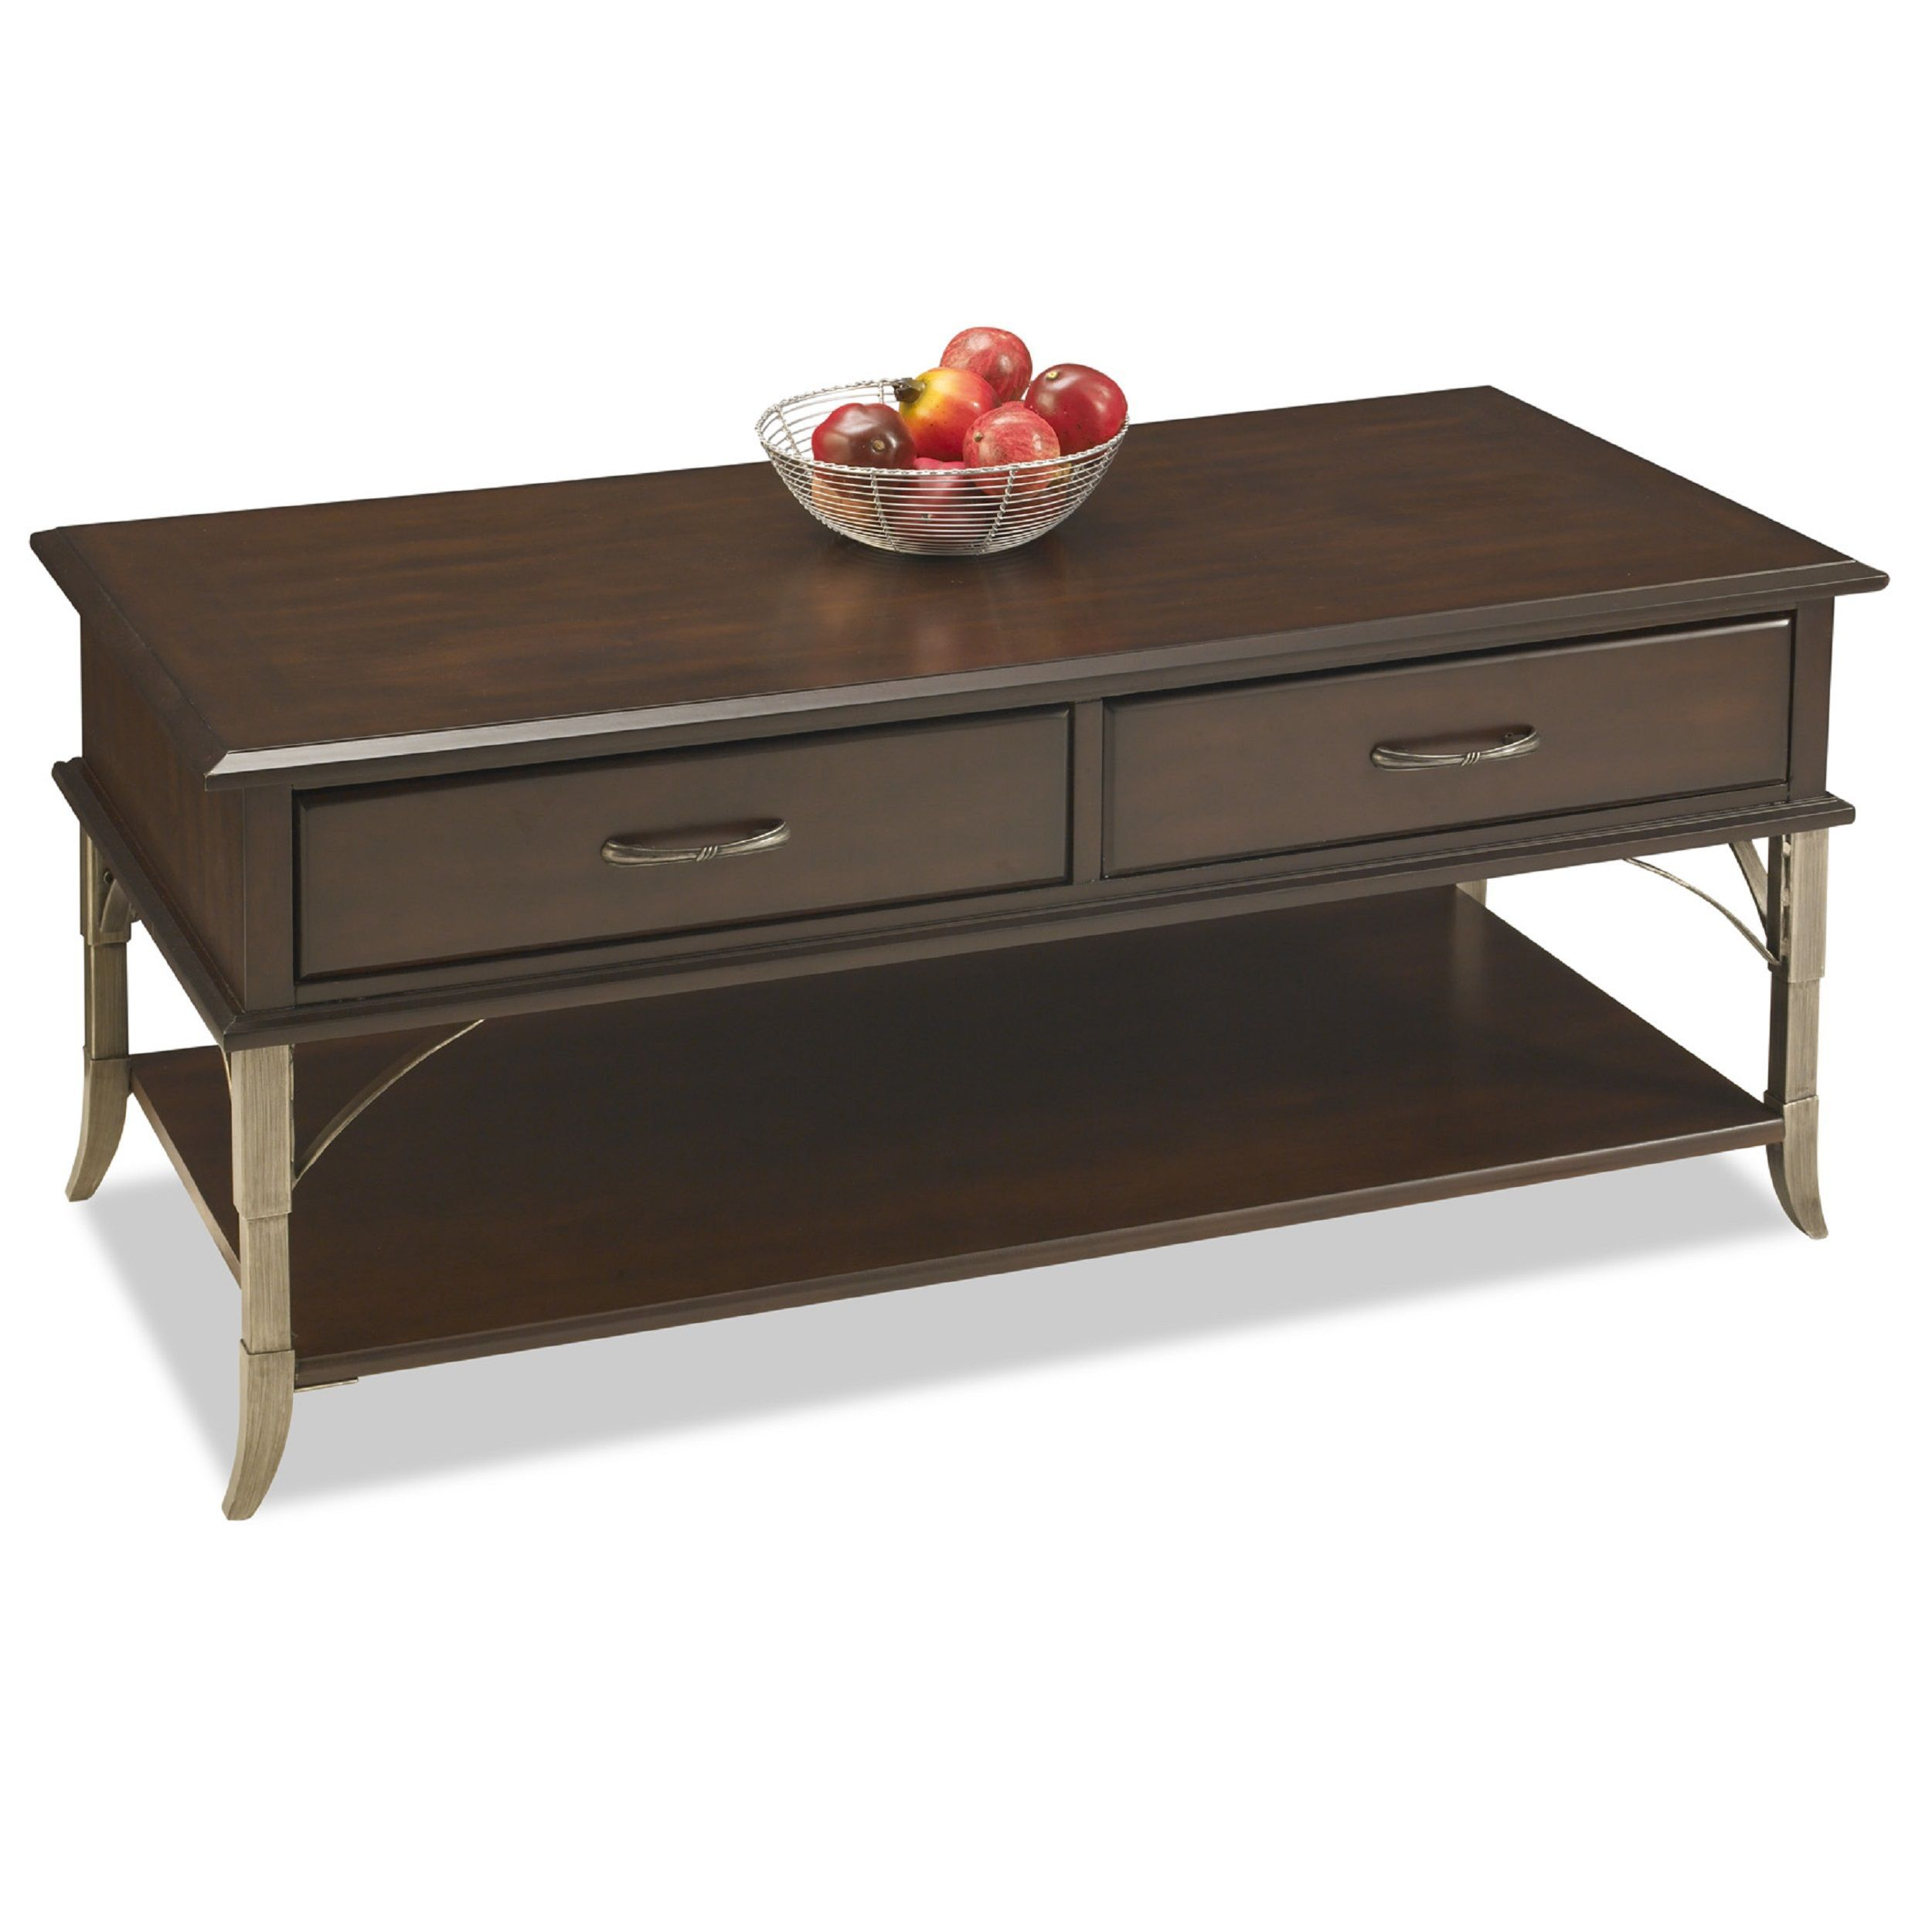 Accent Your Living Room With One Of These Transitional Style Tail Tables This Espresso Finish Table Has A Handy Shelf And Two Convenient Drawers To